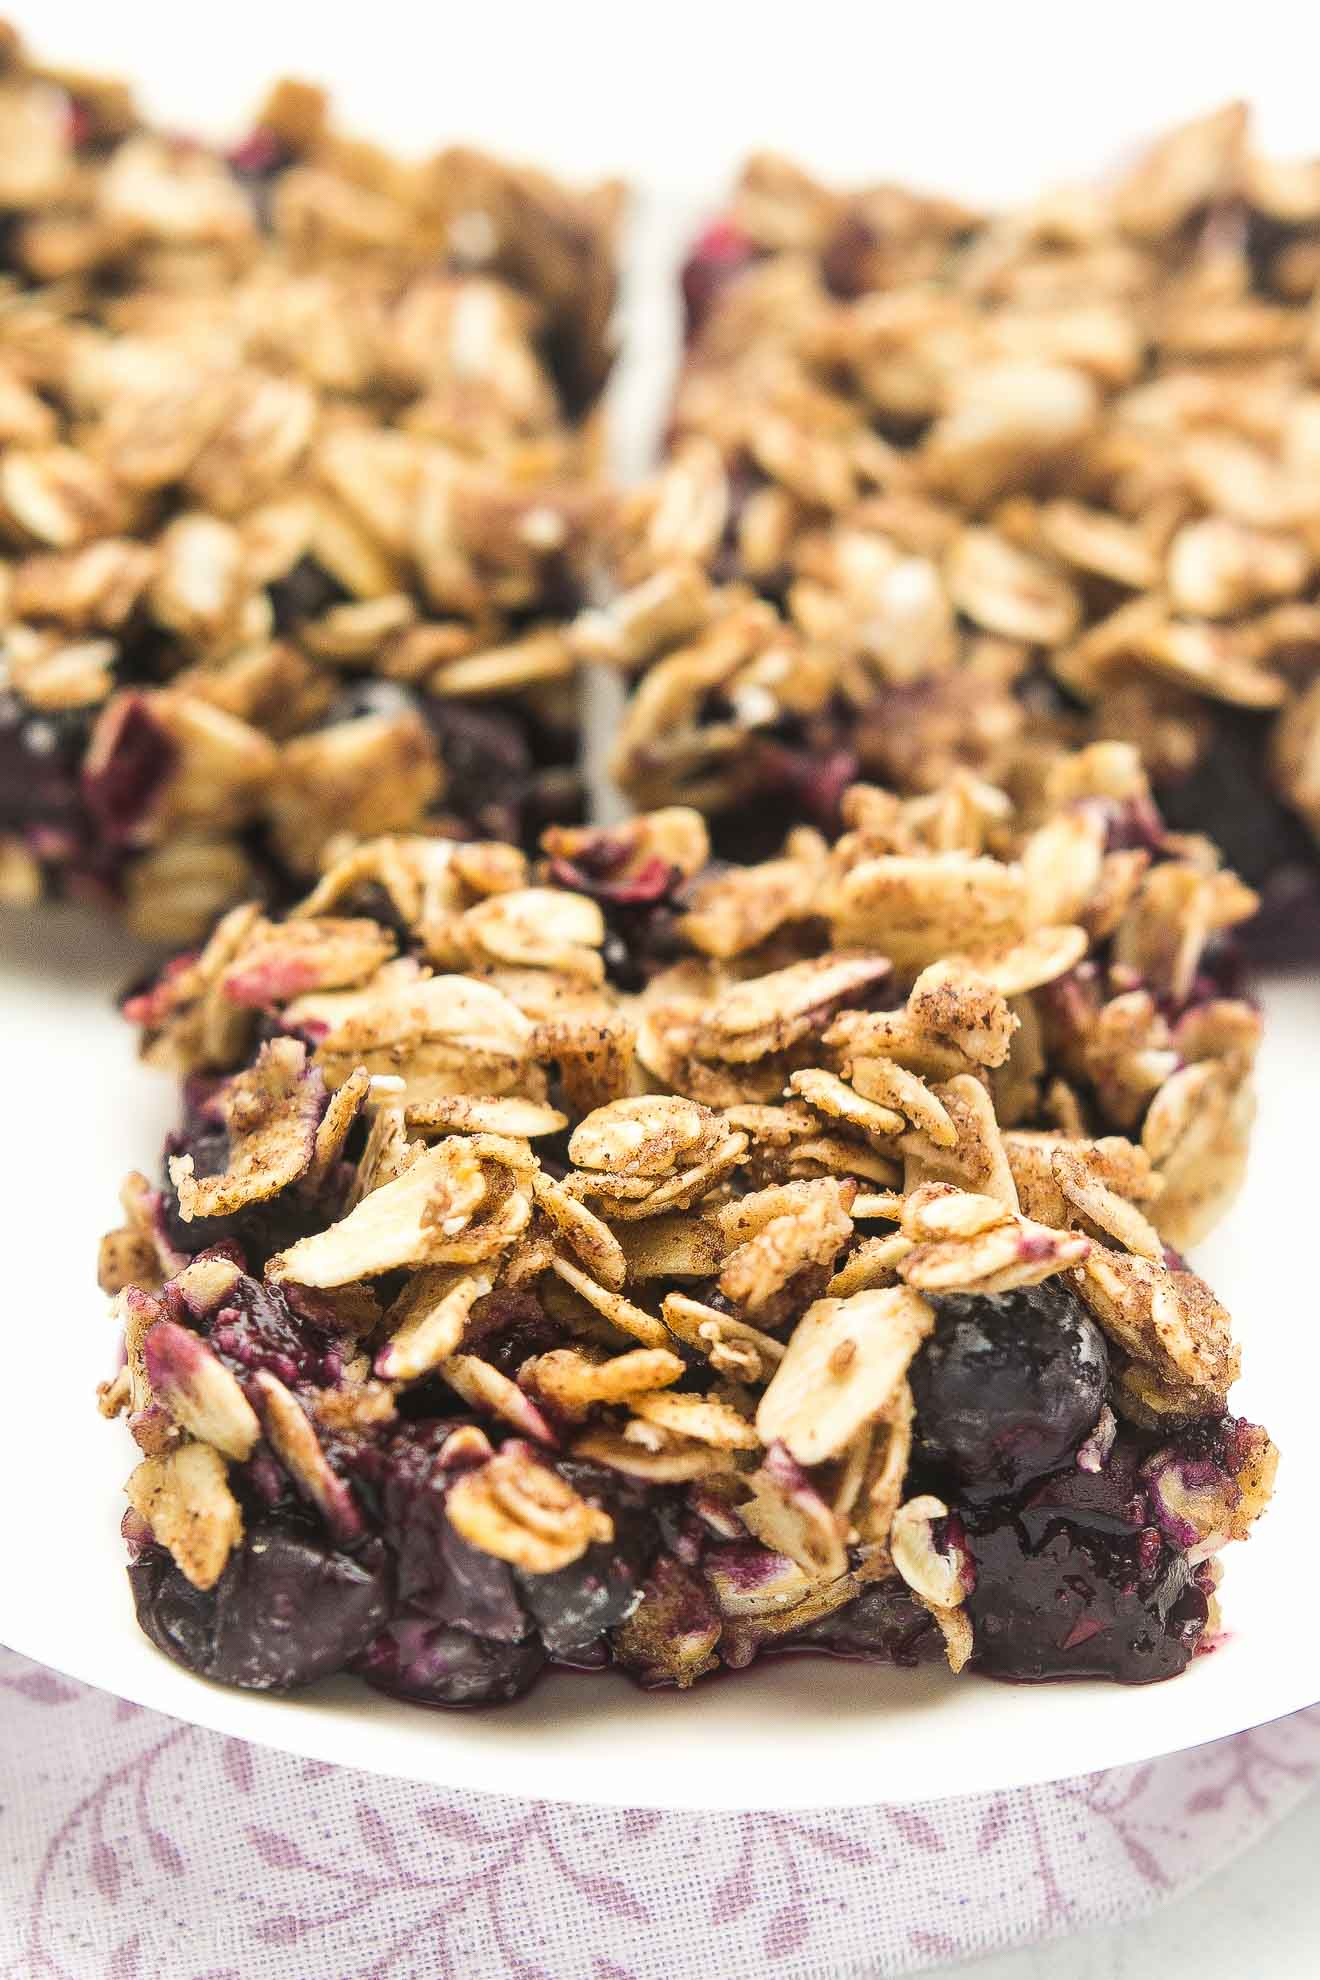 {HEALTHY!} Small Batch Blueberry Crumble Bars -- only 67 calories! Cookie crust + blueberry filling + oatmeal streusel topping = pure BLISS! And this recipe is surprisingly EASY to make!